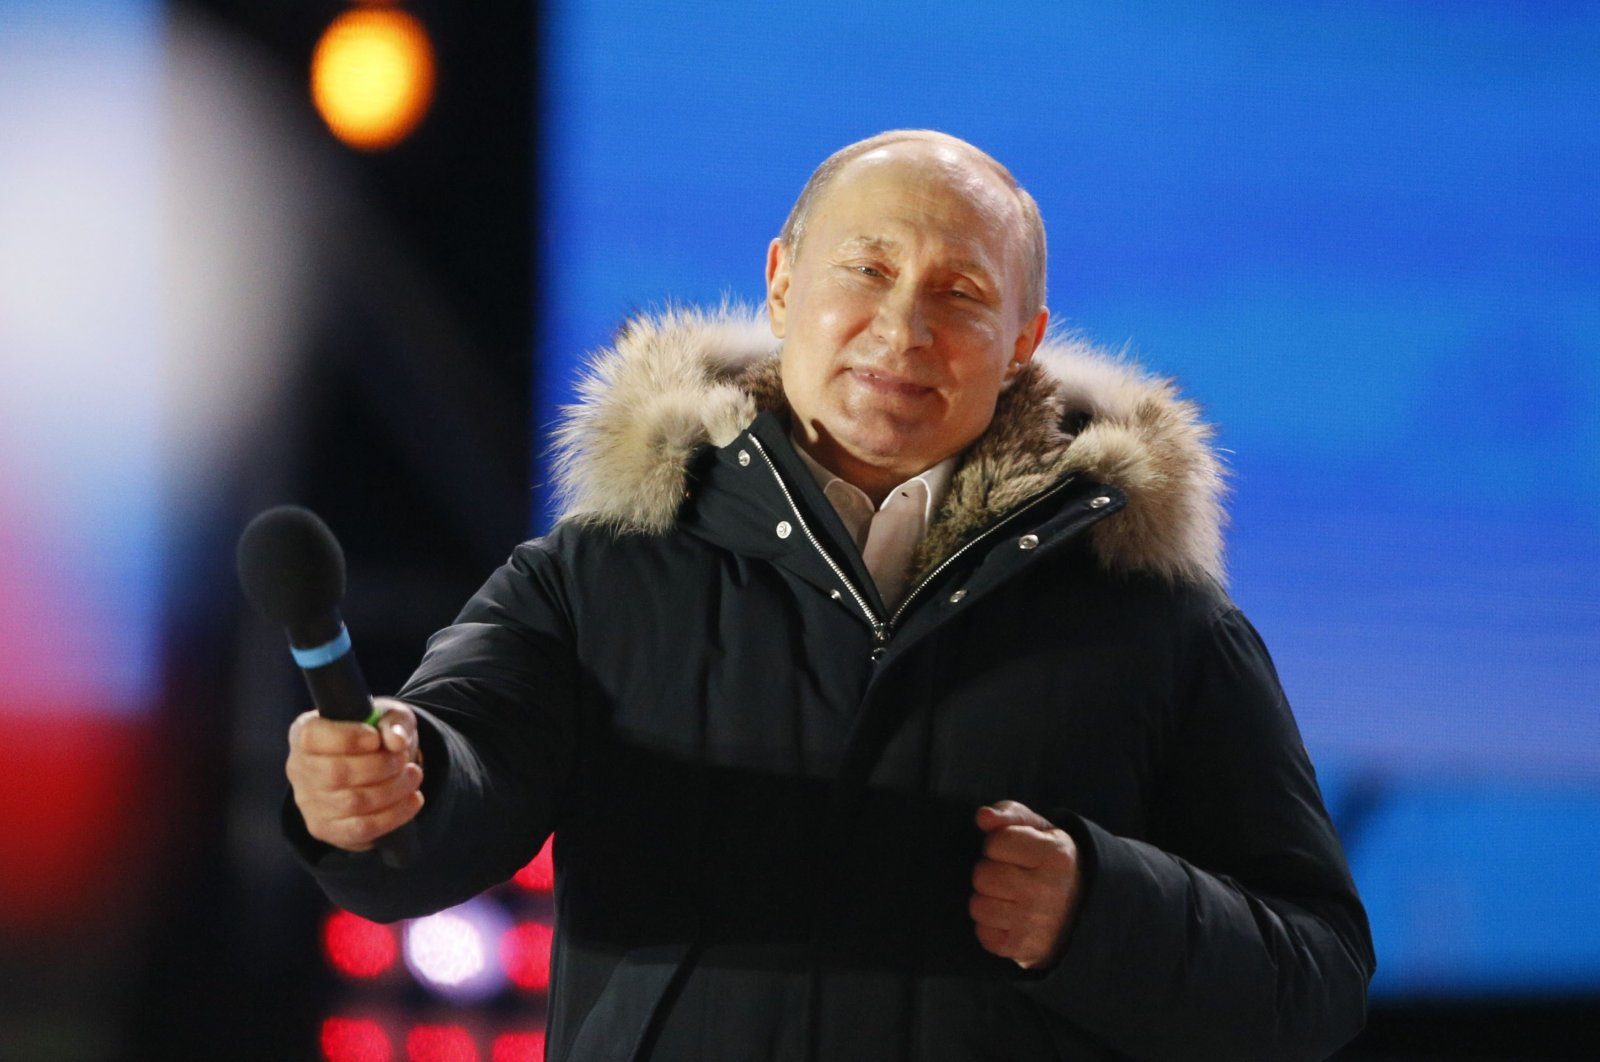 Russian President and Presidential candidate Vladimir Putin attends a rally and concert marking the fourth anniversary of Russia's annexation of the Crimea region, at Manezhnaya Square in central Moscow, Russia, March 18, 2018. (Reuters Photo)